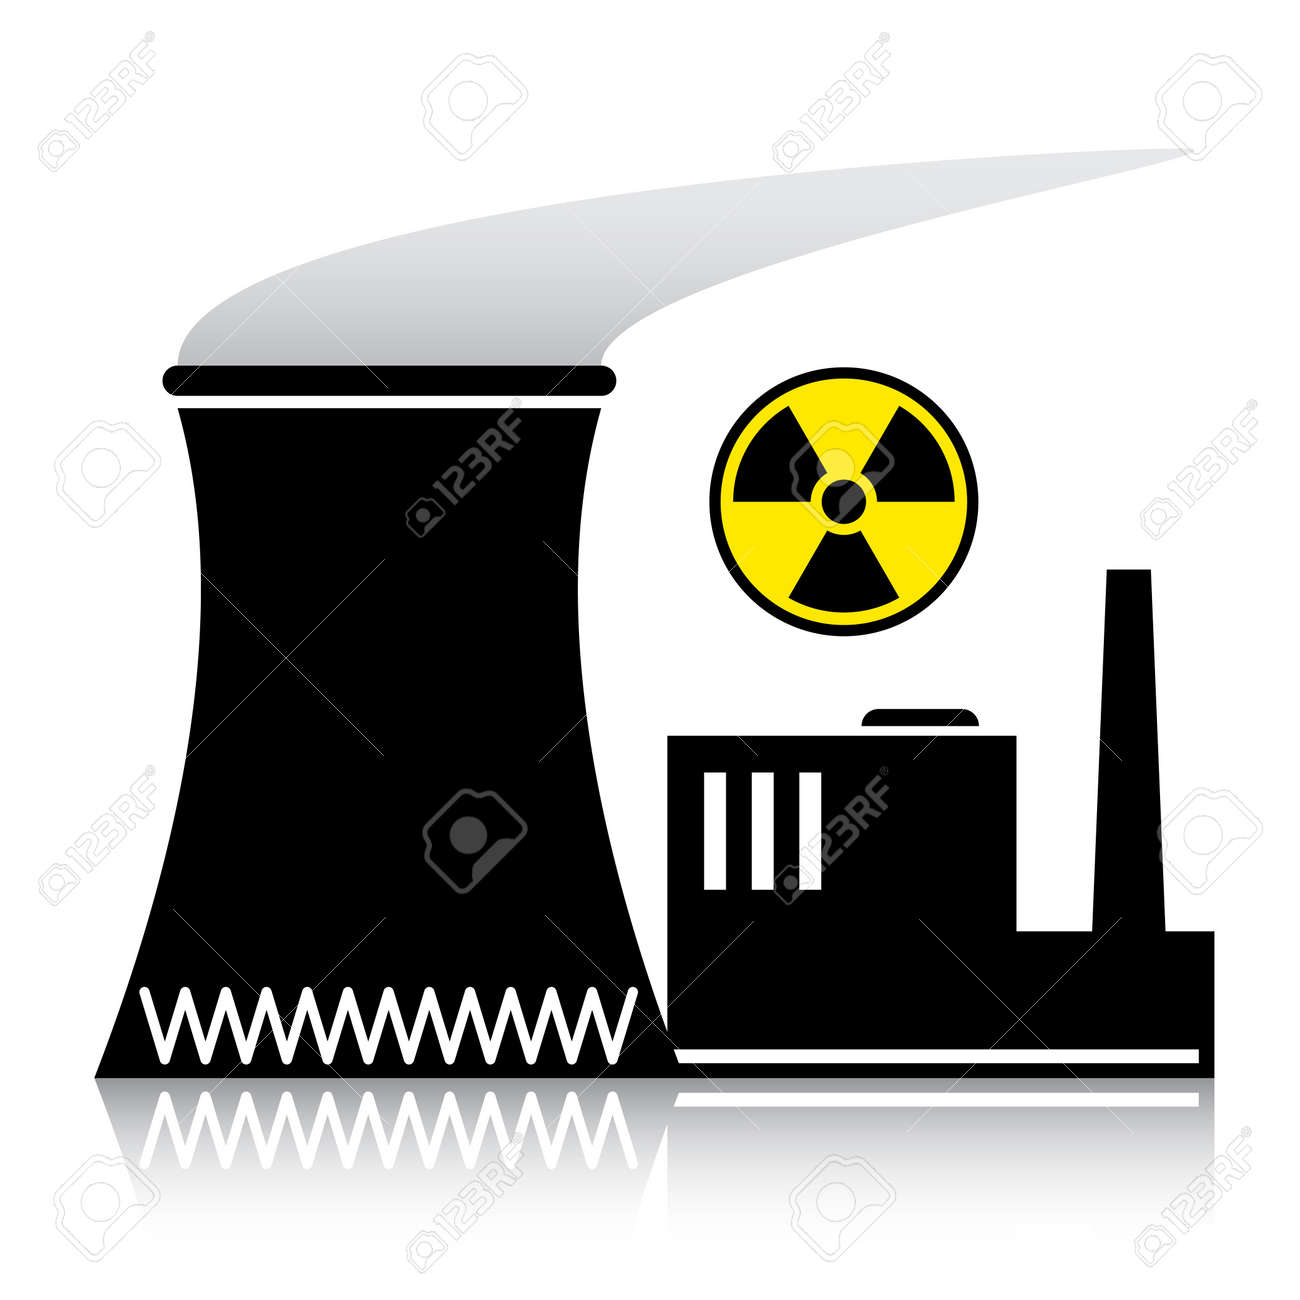 vector nuclear power plant silhouette royalty free cliparts vectors rh 123rf com electricity power plant clipart natural gas power plant clipart